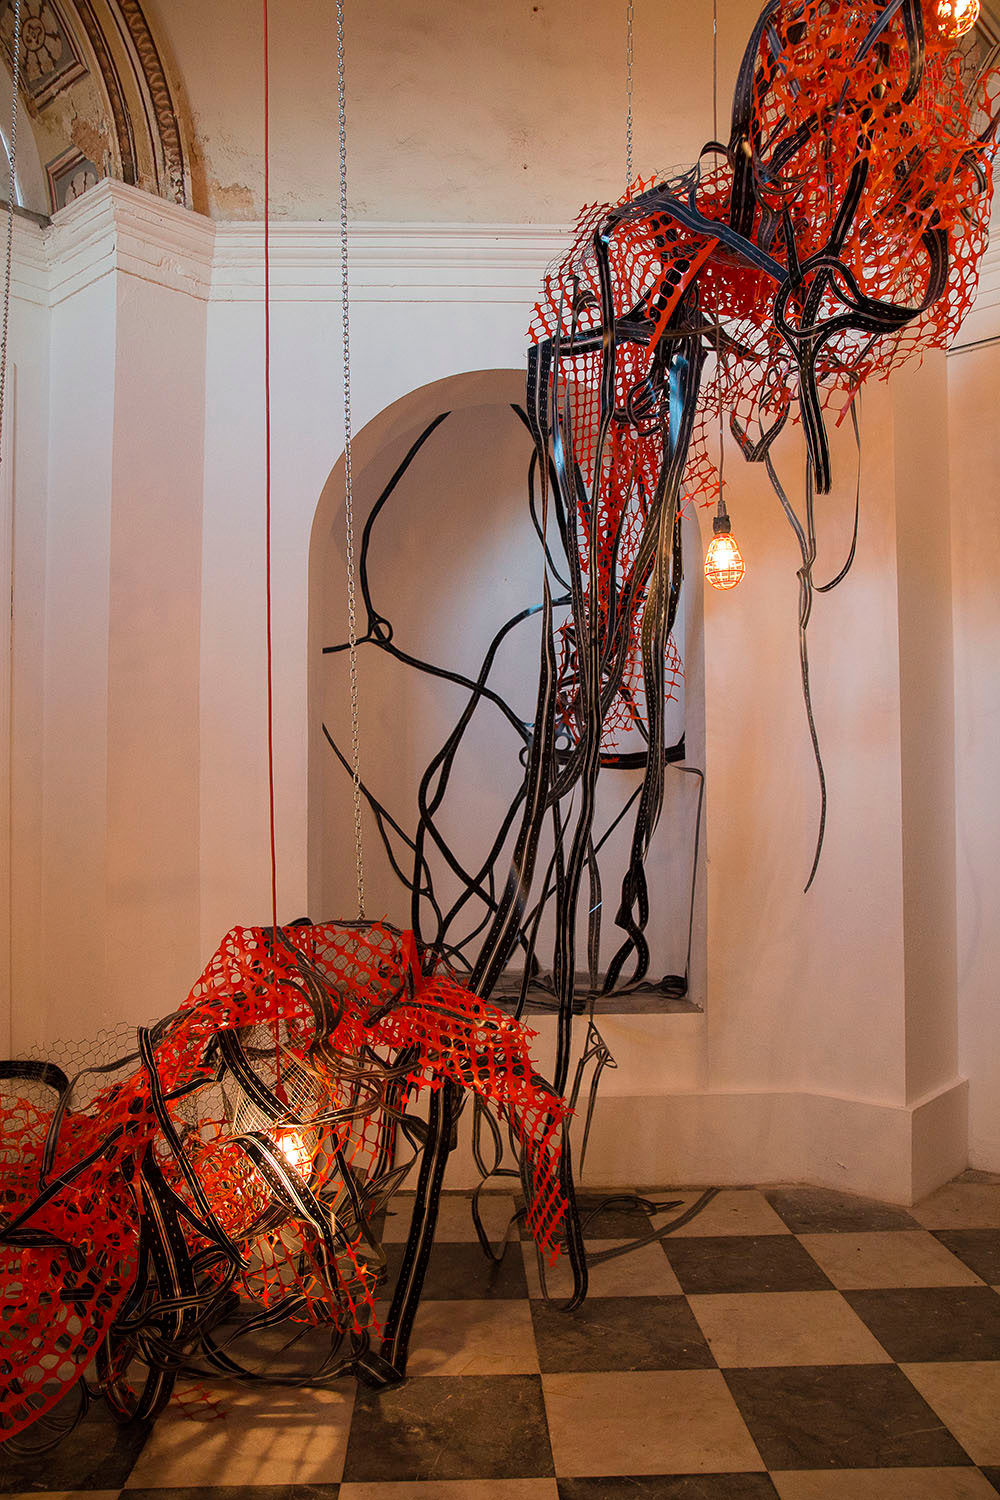 """Closed System III  (installation view) 2015; Woodcut on mylar, fencing, extension cords, tape chains, lights and zip ties; 30' x 22' x 22"""" Shown here at  4ta: Trienal Poli/Gráfica de San Juan: América Latina y el Caribe , San Juan, Puerto Rico"""